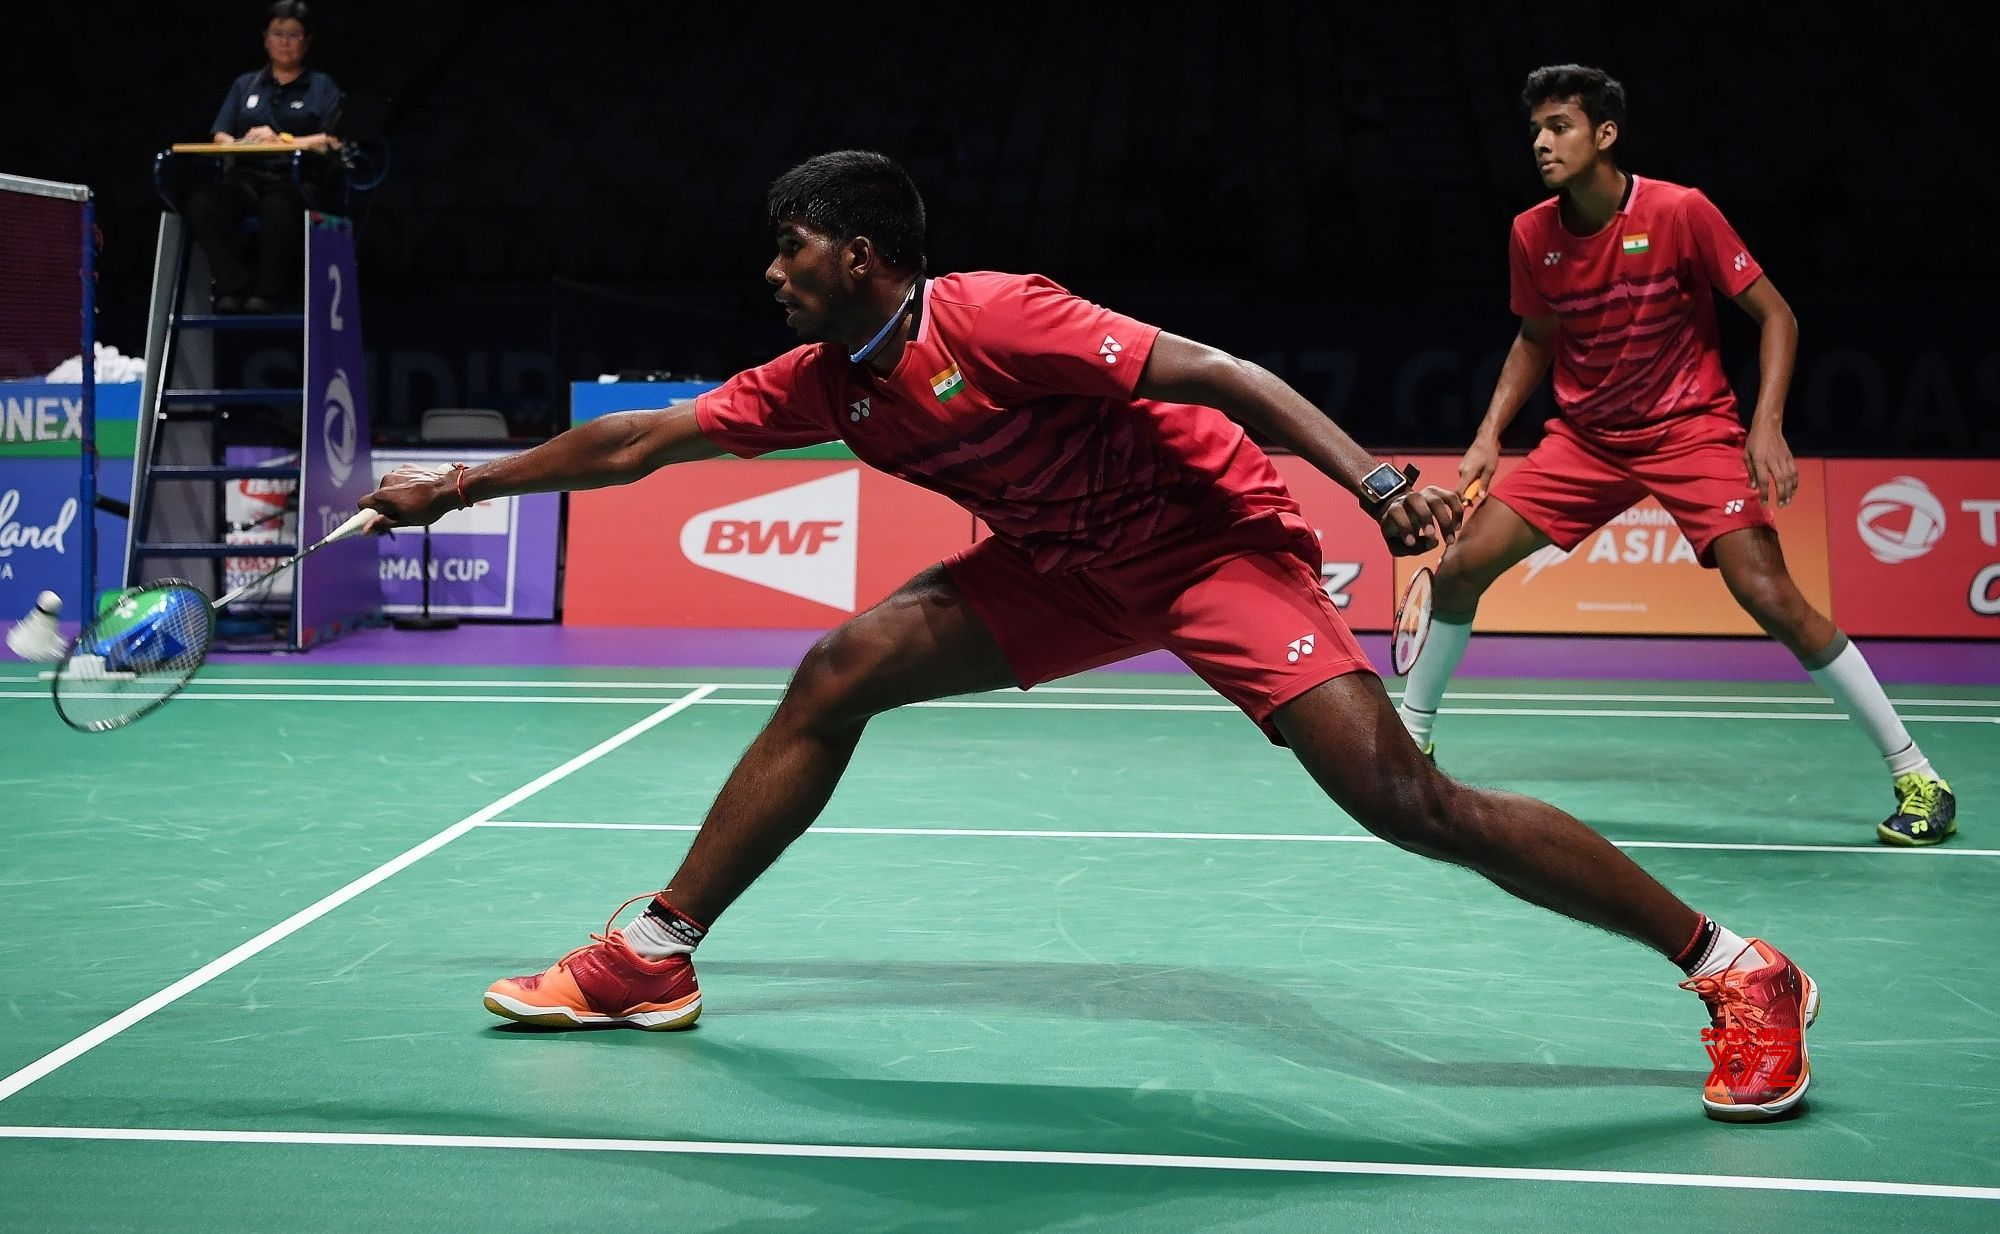 Thailand Open: Satwik-Chirag bow out of men's doubles